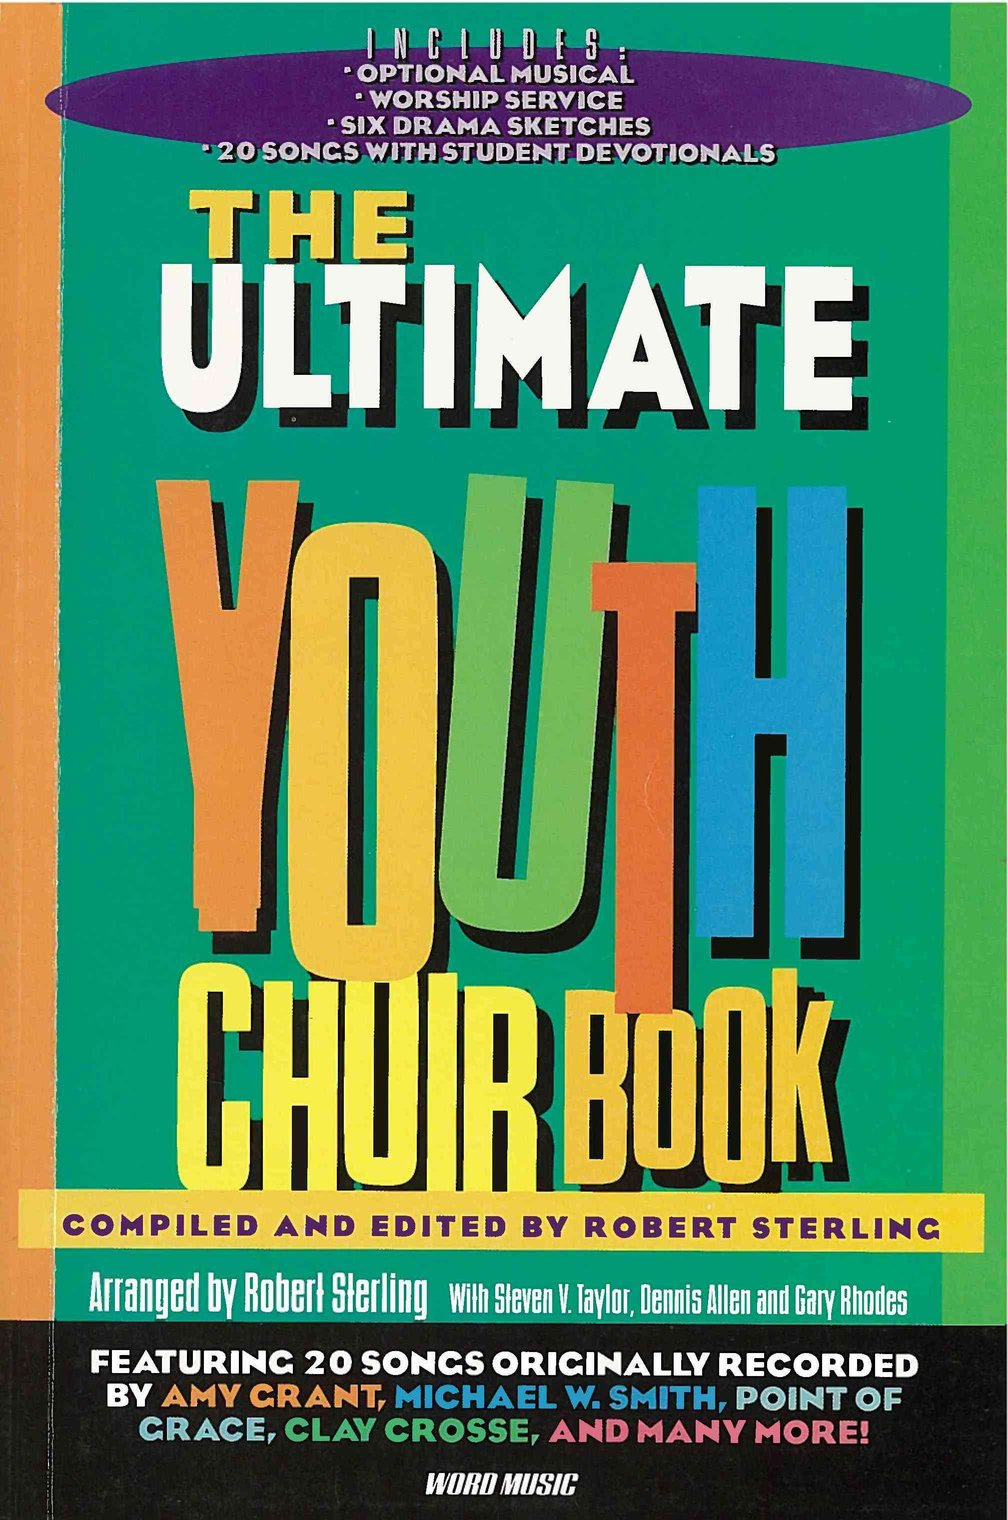 The Ultimate Youth Choir Book V1